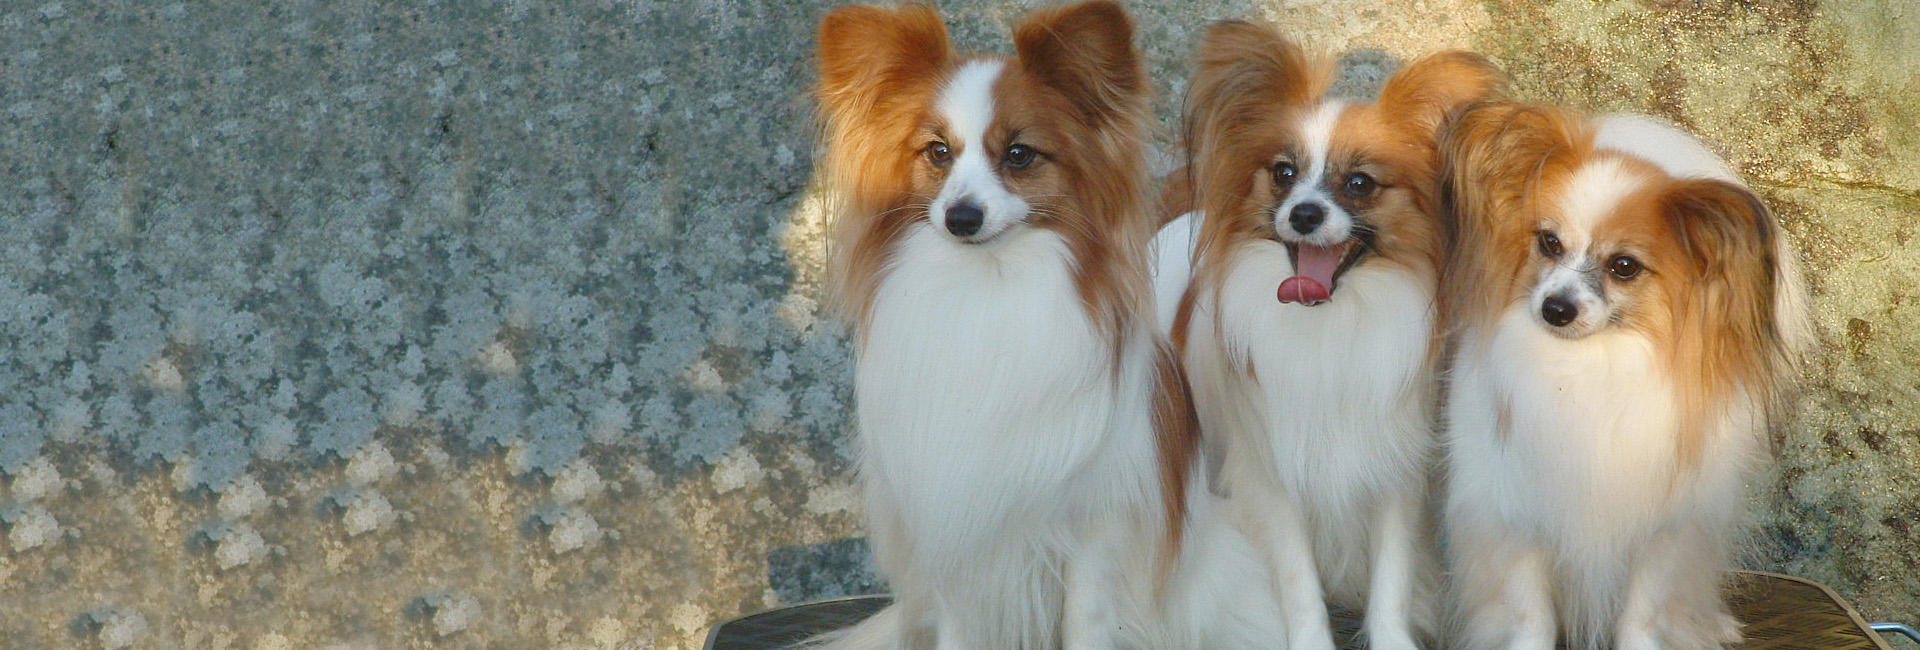 Papillon Norsk Kennel Klub